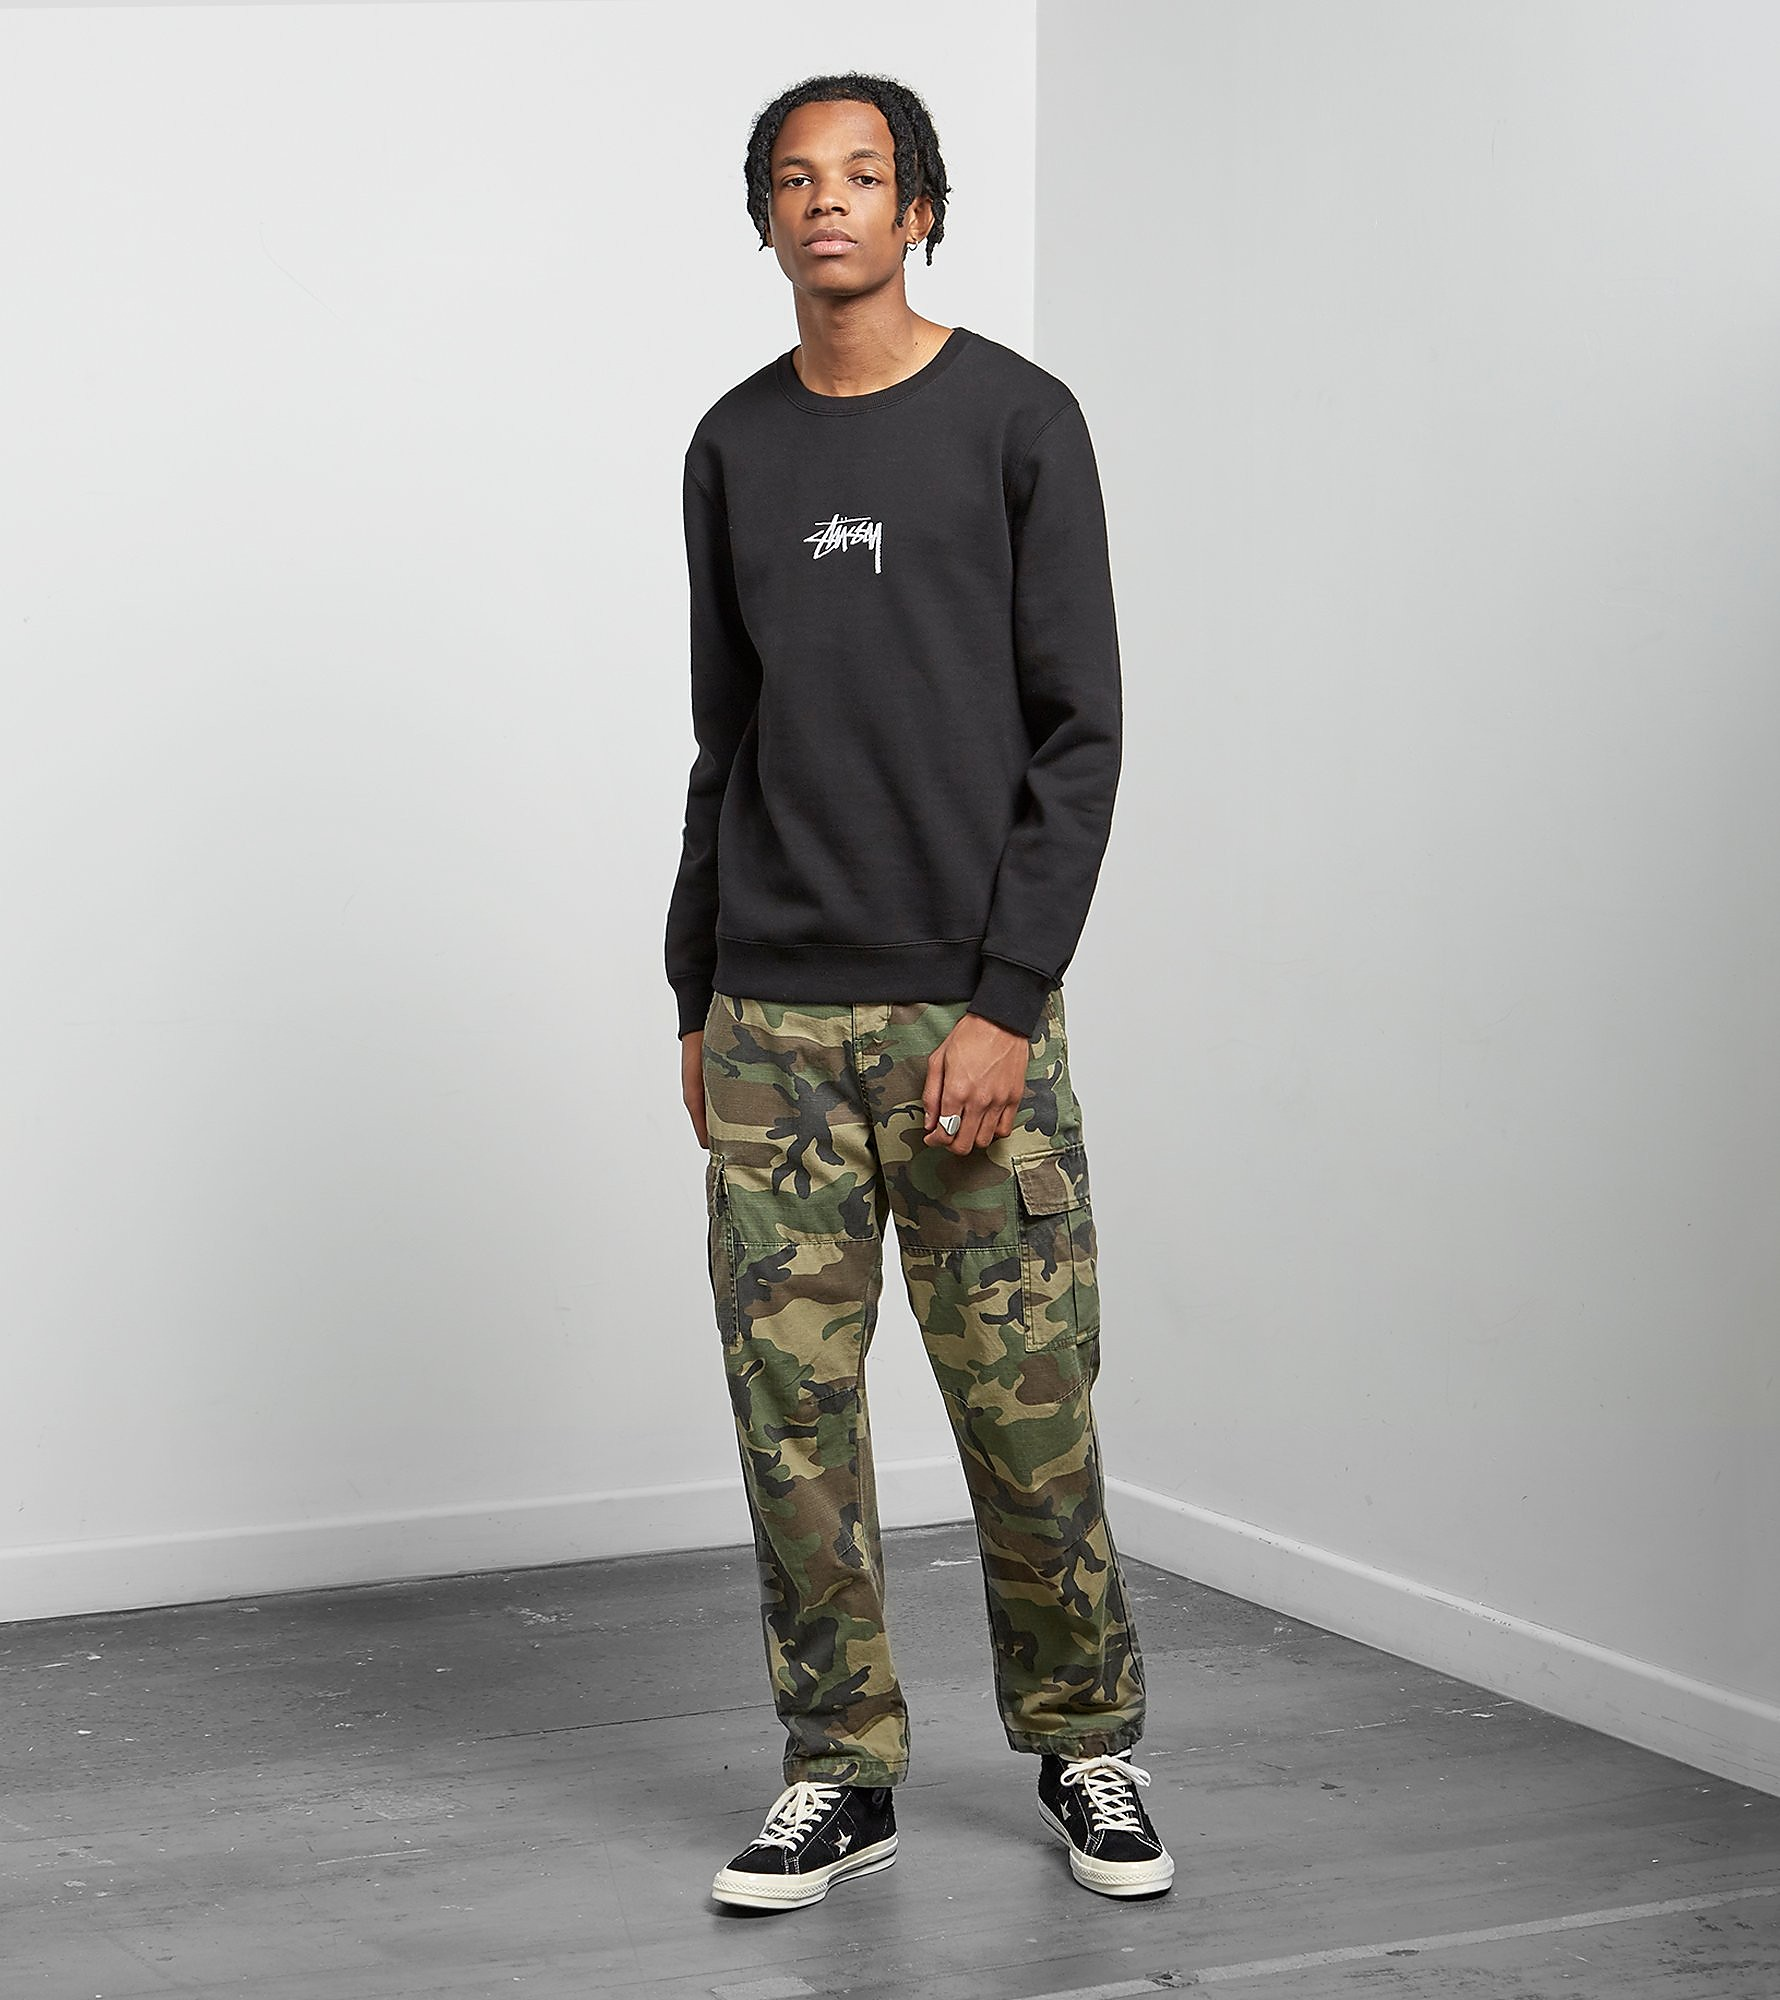 Stussy Stock Applique Crewneck Sweatshirt